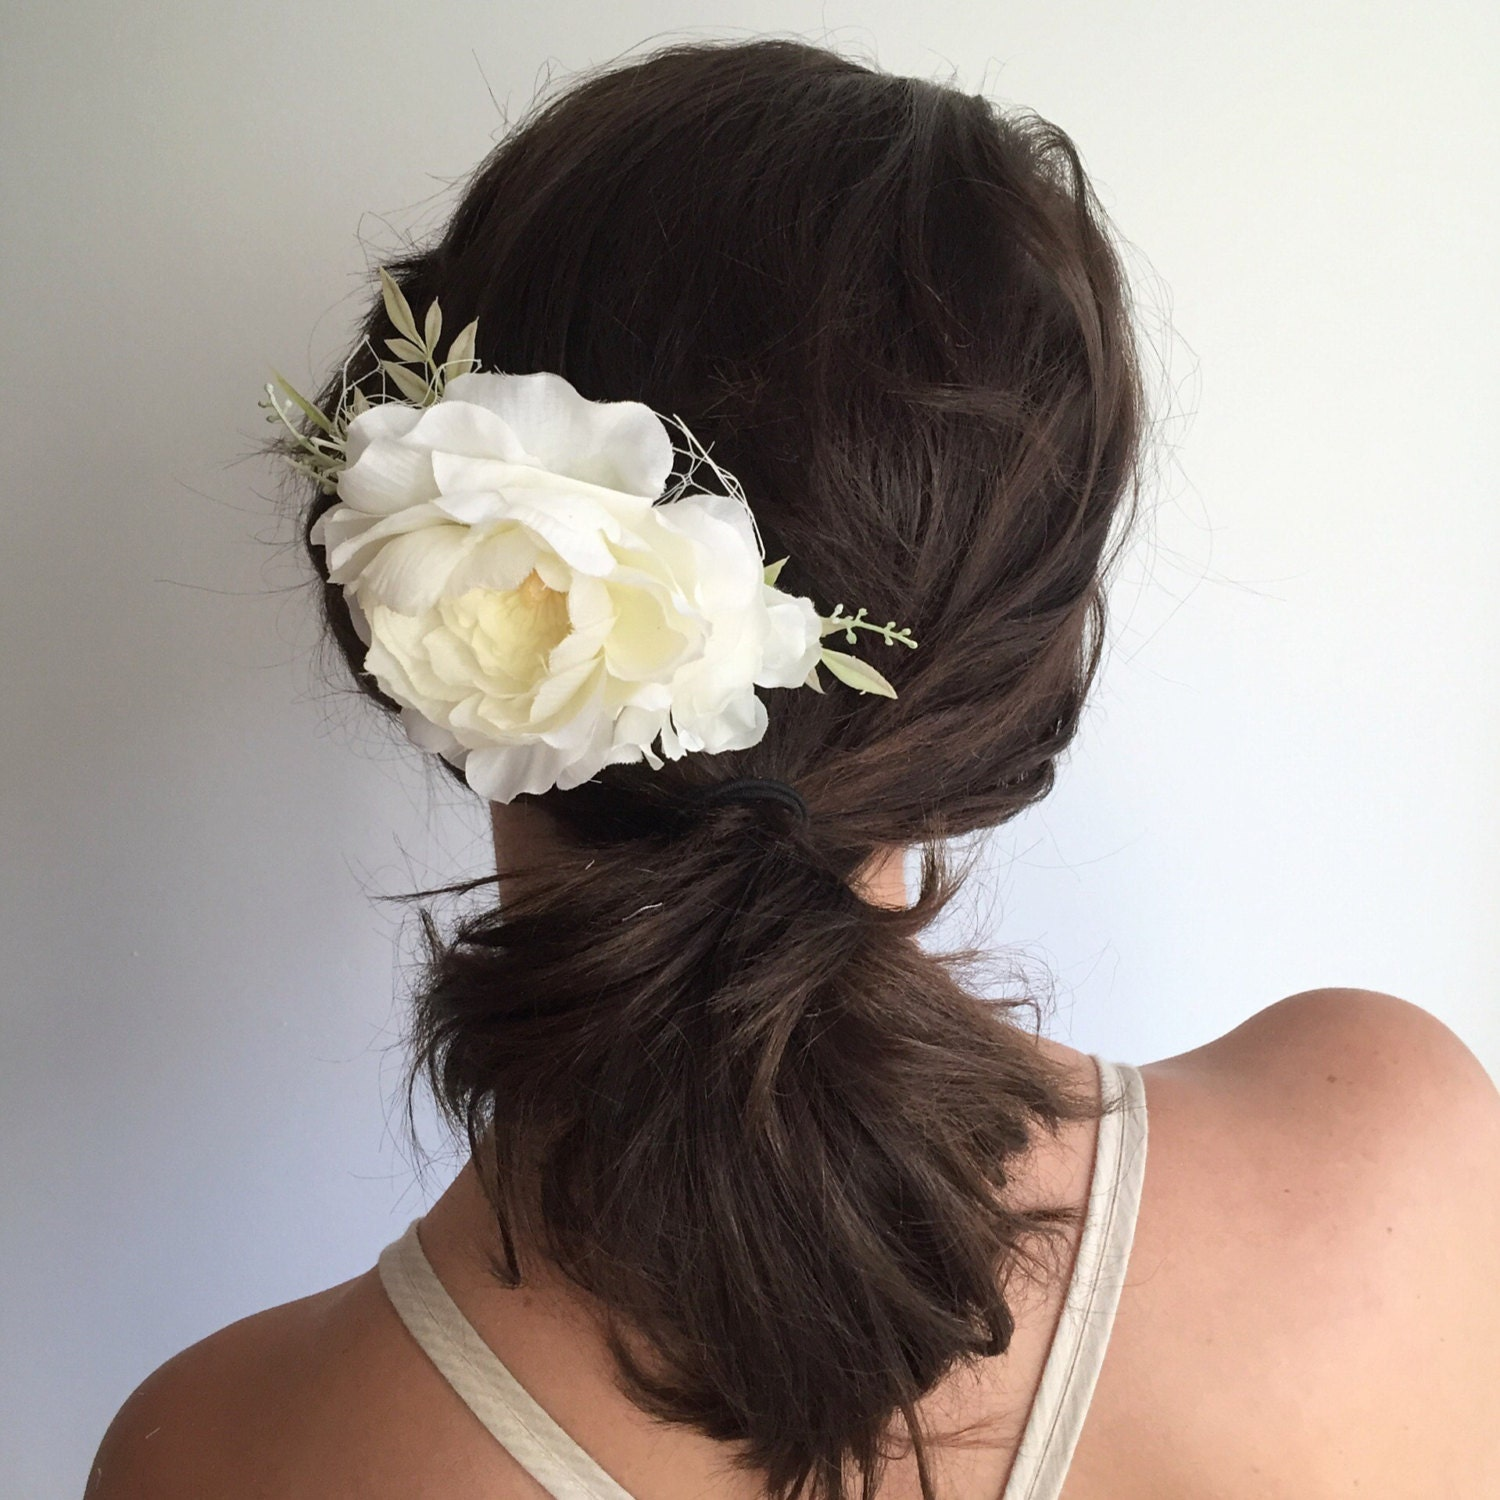 Floral Wedding Hair Comb By Britten: Ivory Bridal Hair Comb Ivory Flower Comb Floral Wedding